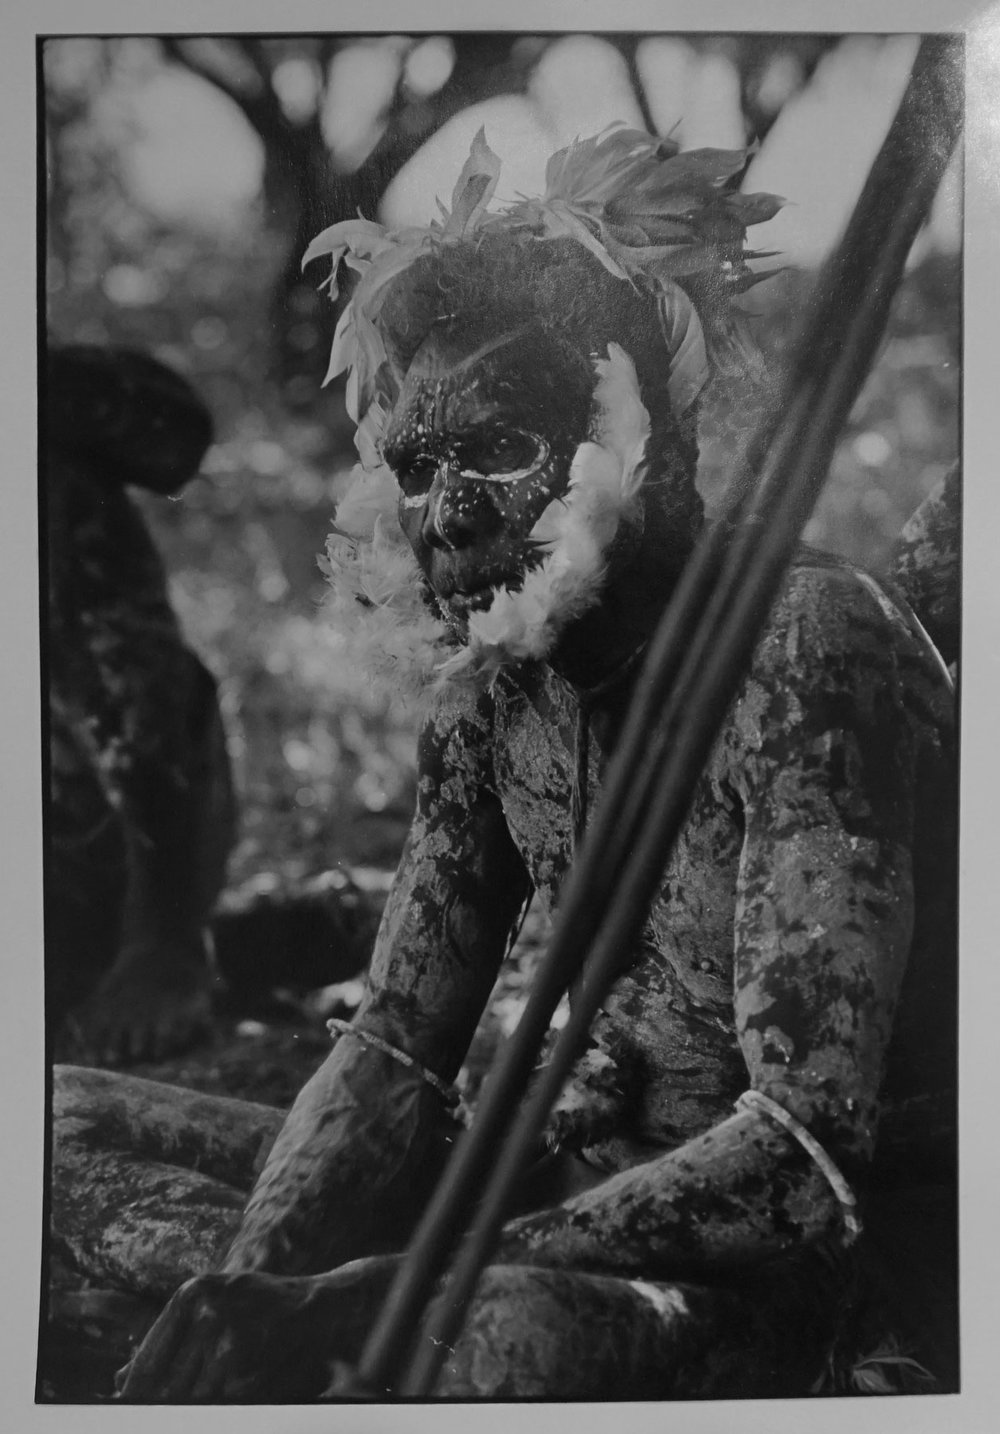 25. Richard Woldendorp, 'Tribesman, Northern Territory', BW151, taken and printed in c.1970, Vintage Print